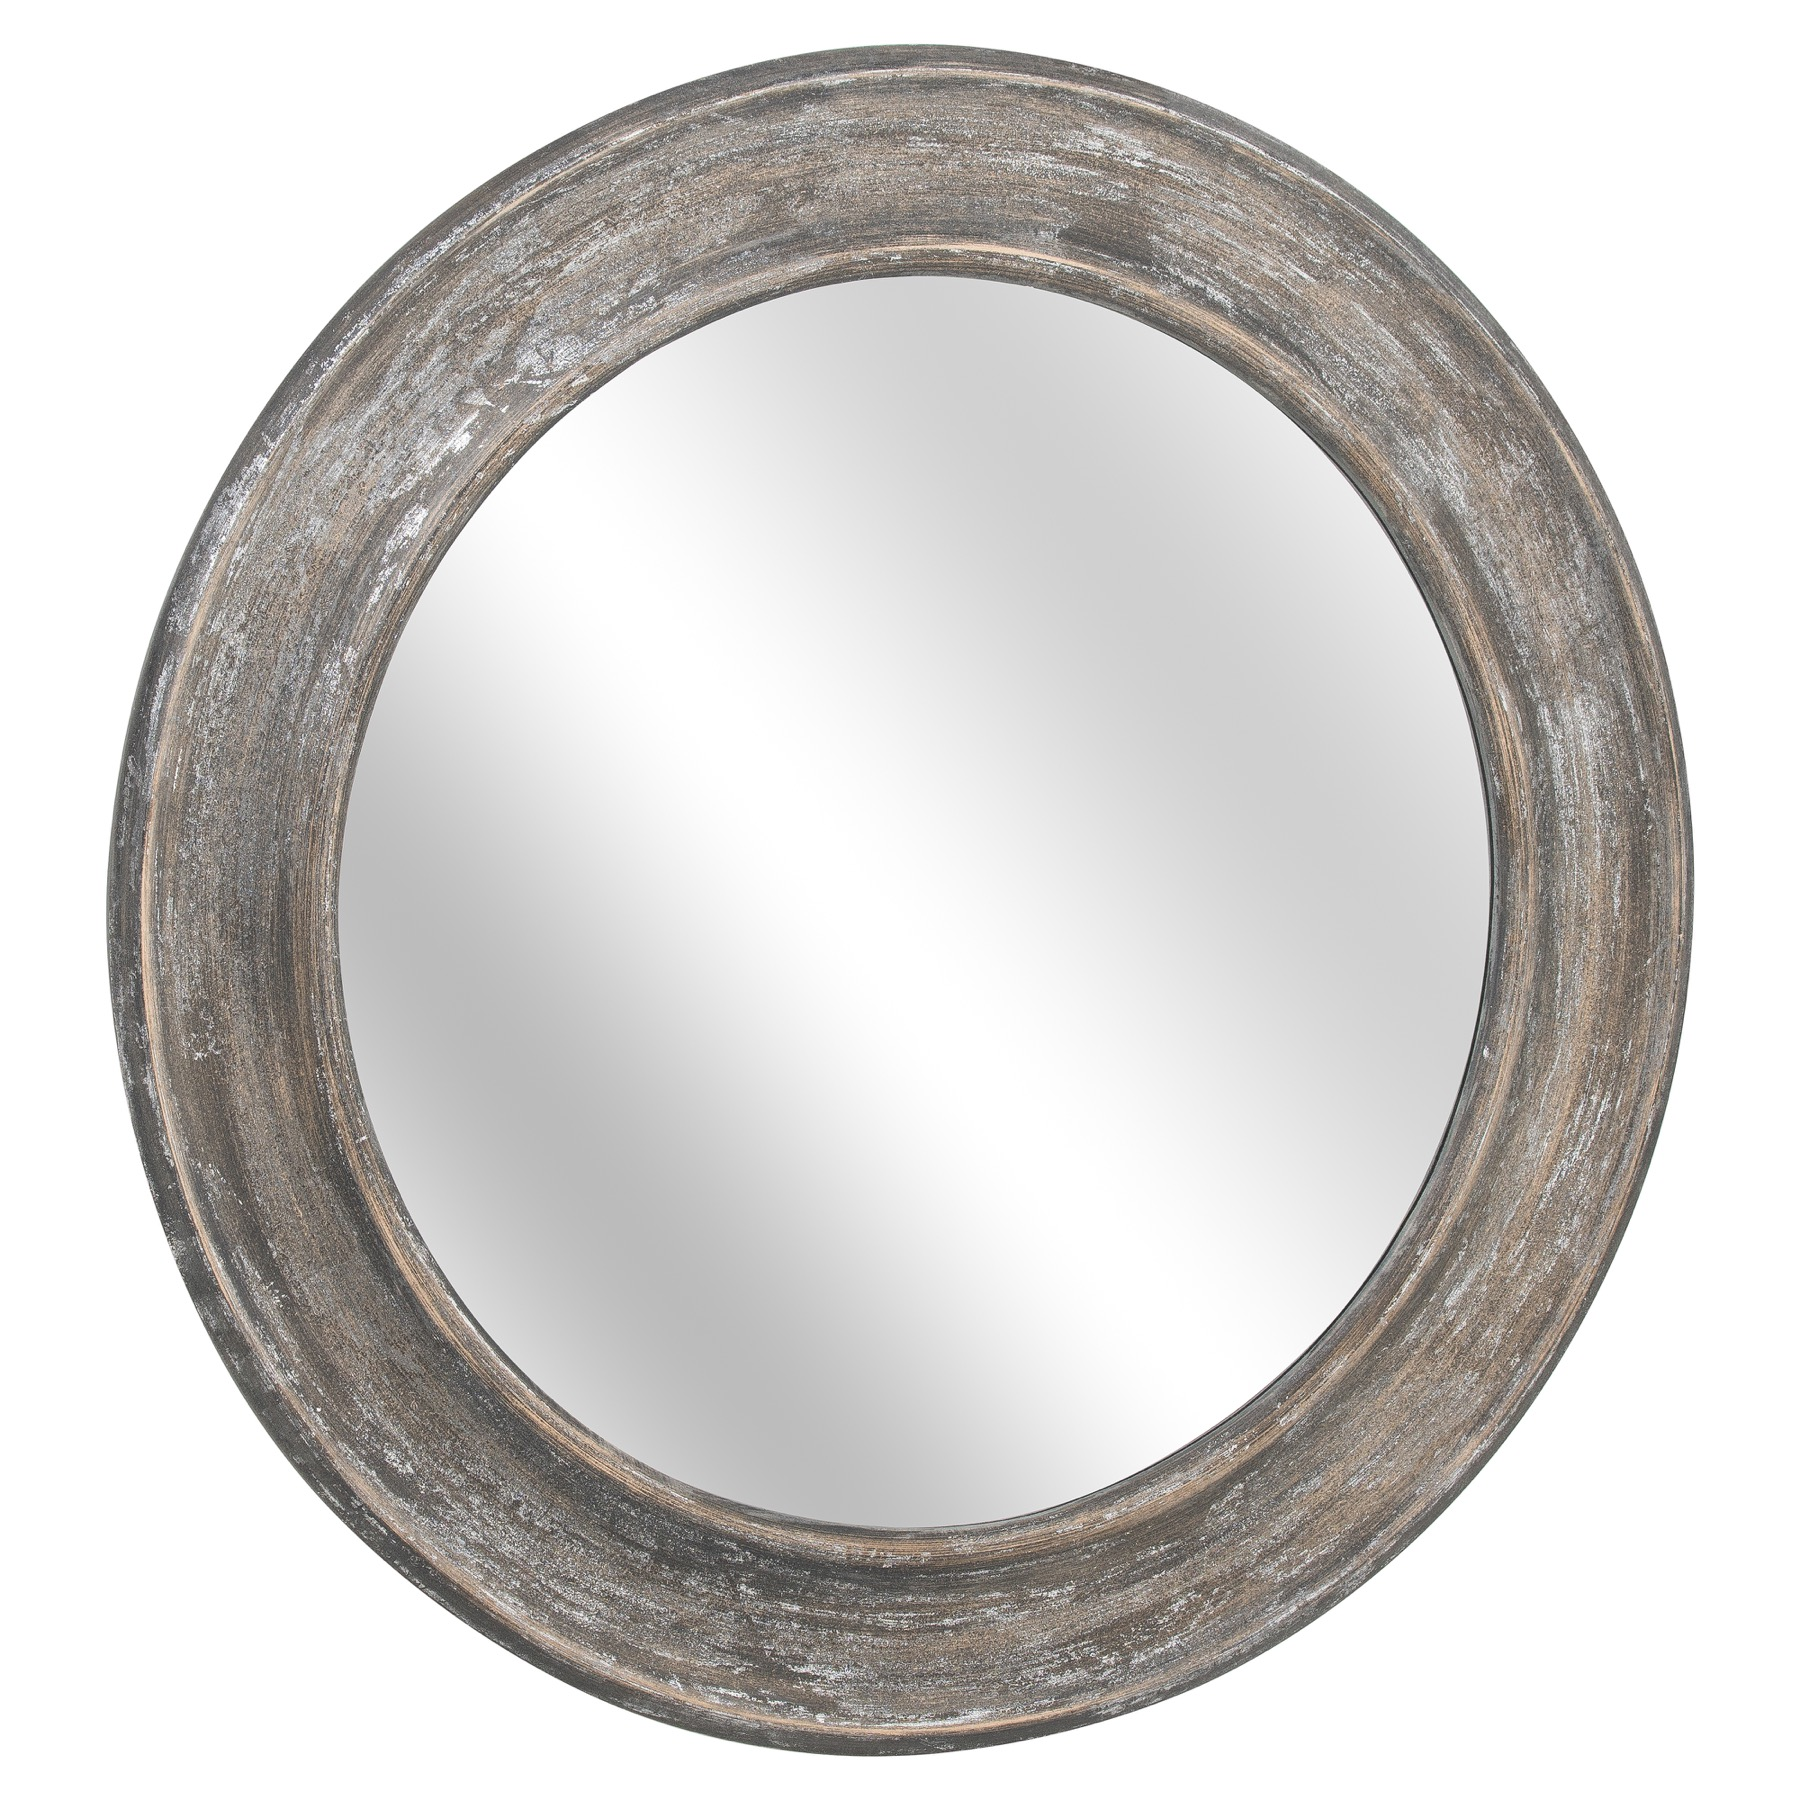 Large Laurel Antique Metallic Wall Mirror From Baytree Interiors